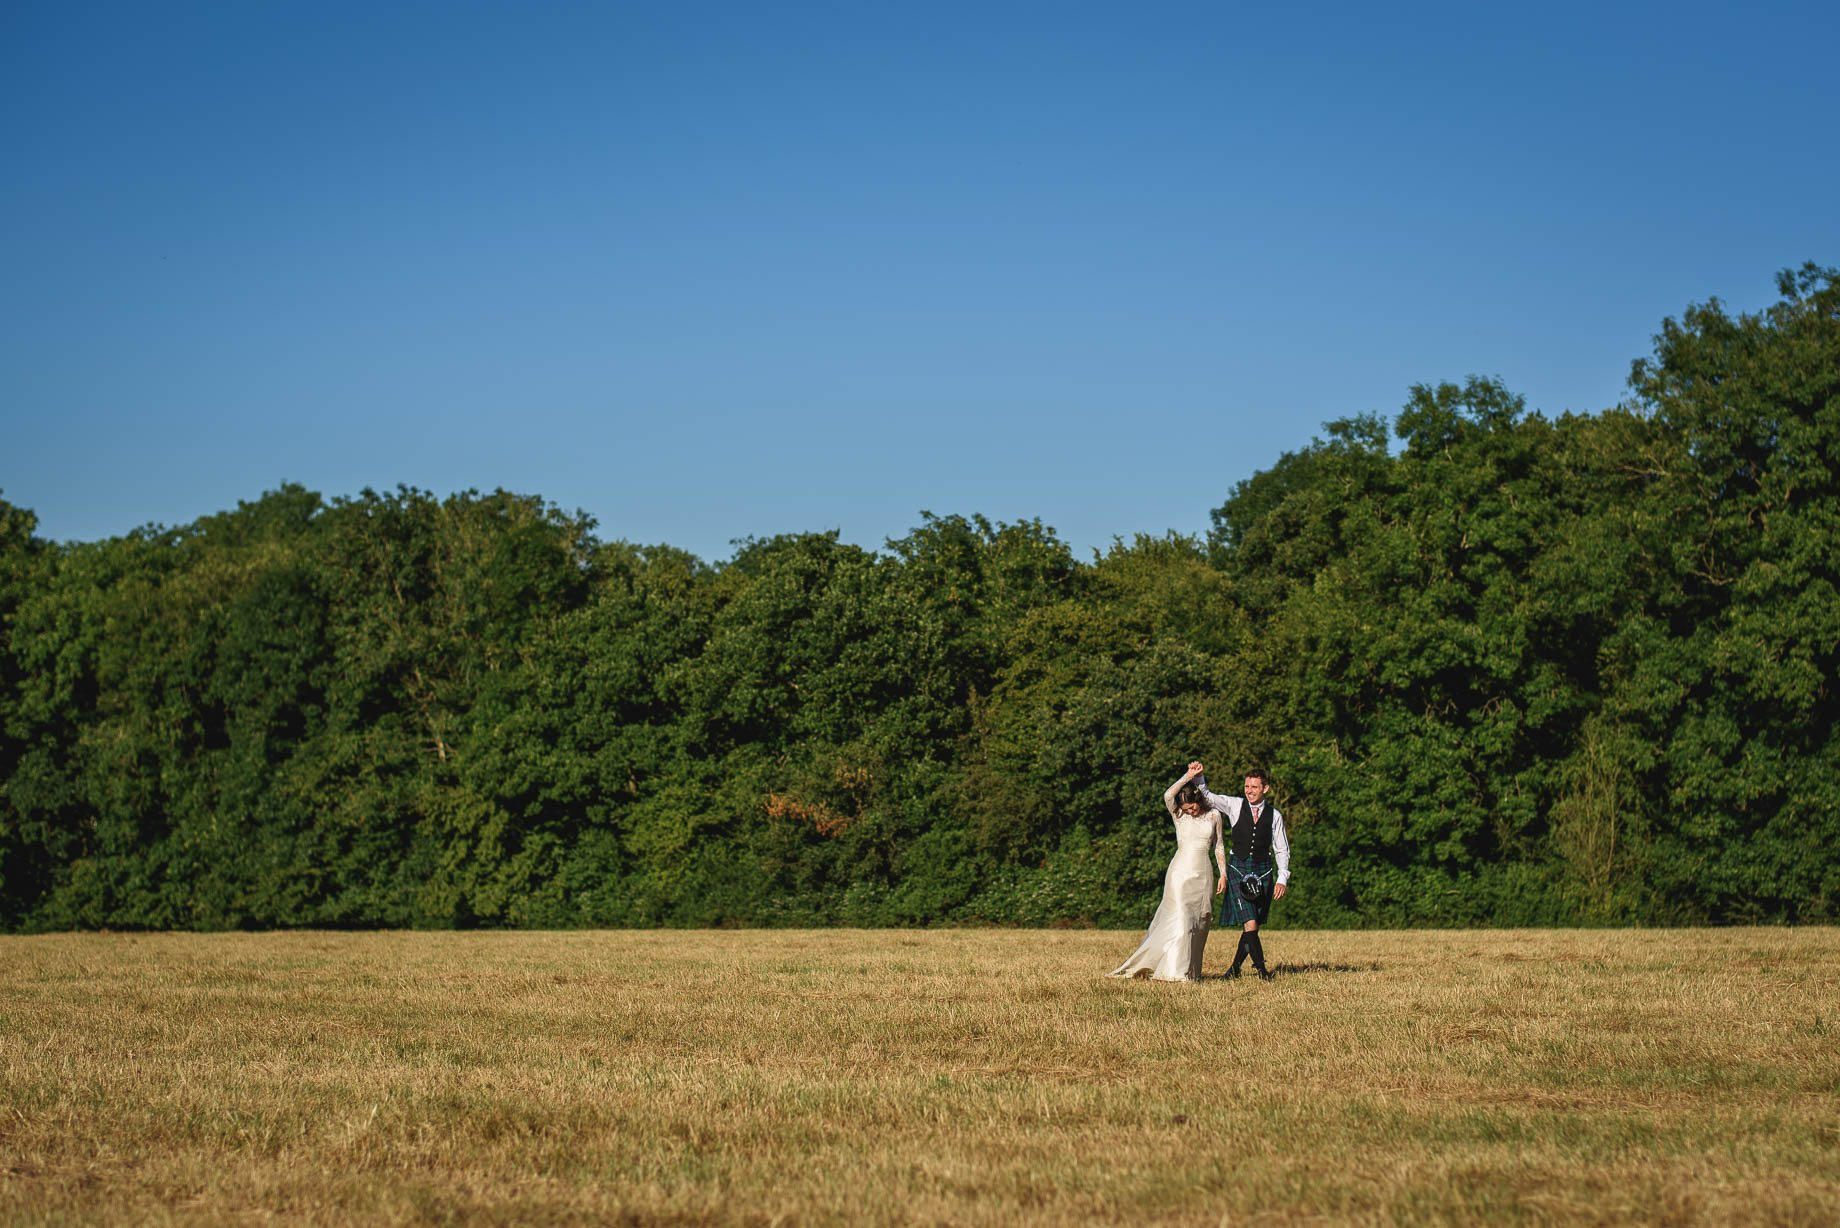 Gildings Barn wedding photography - Sarah and Steve (150 of 190)